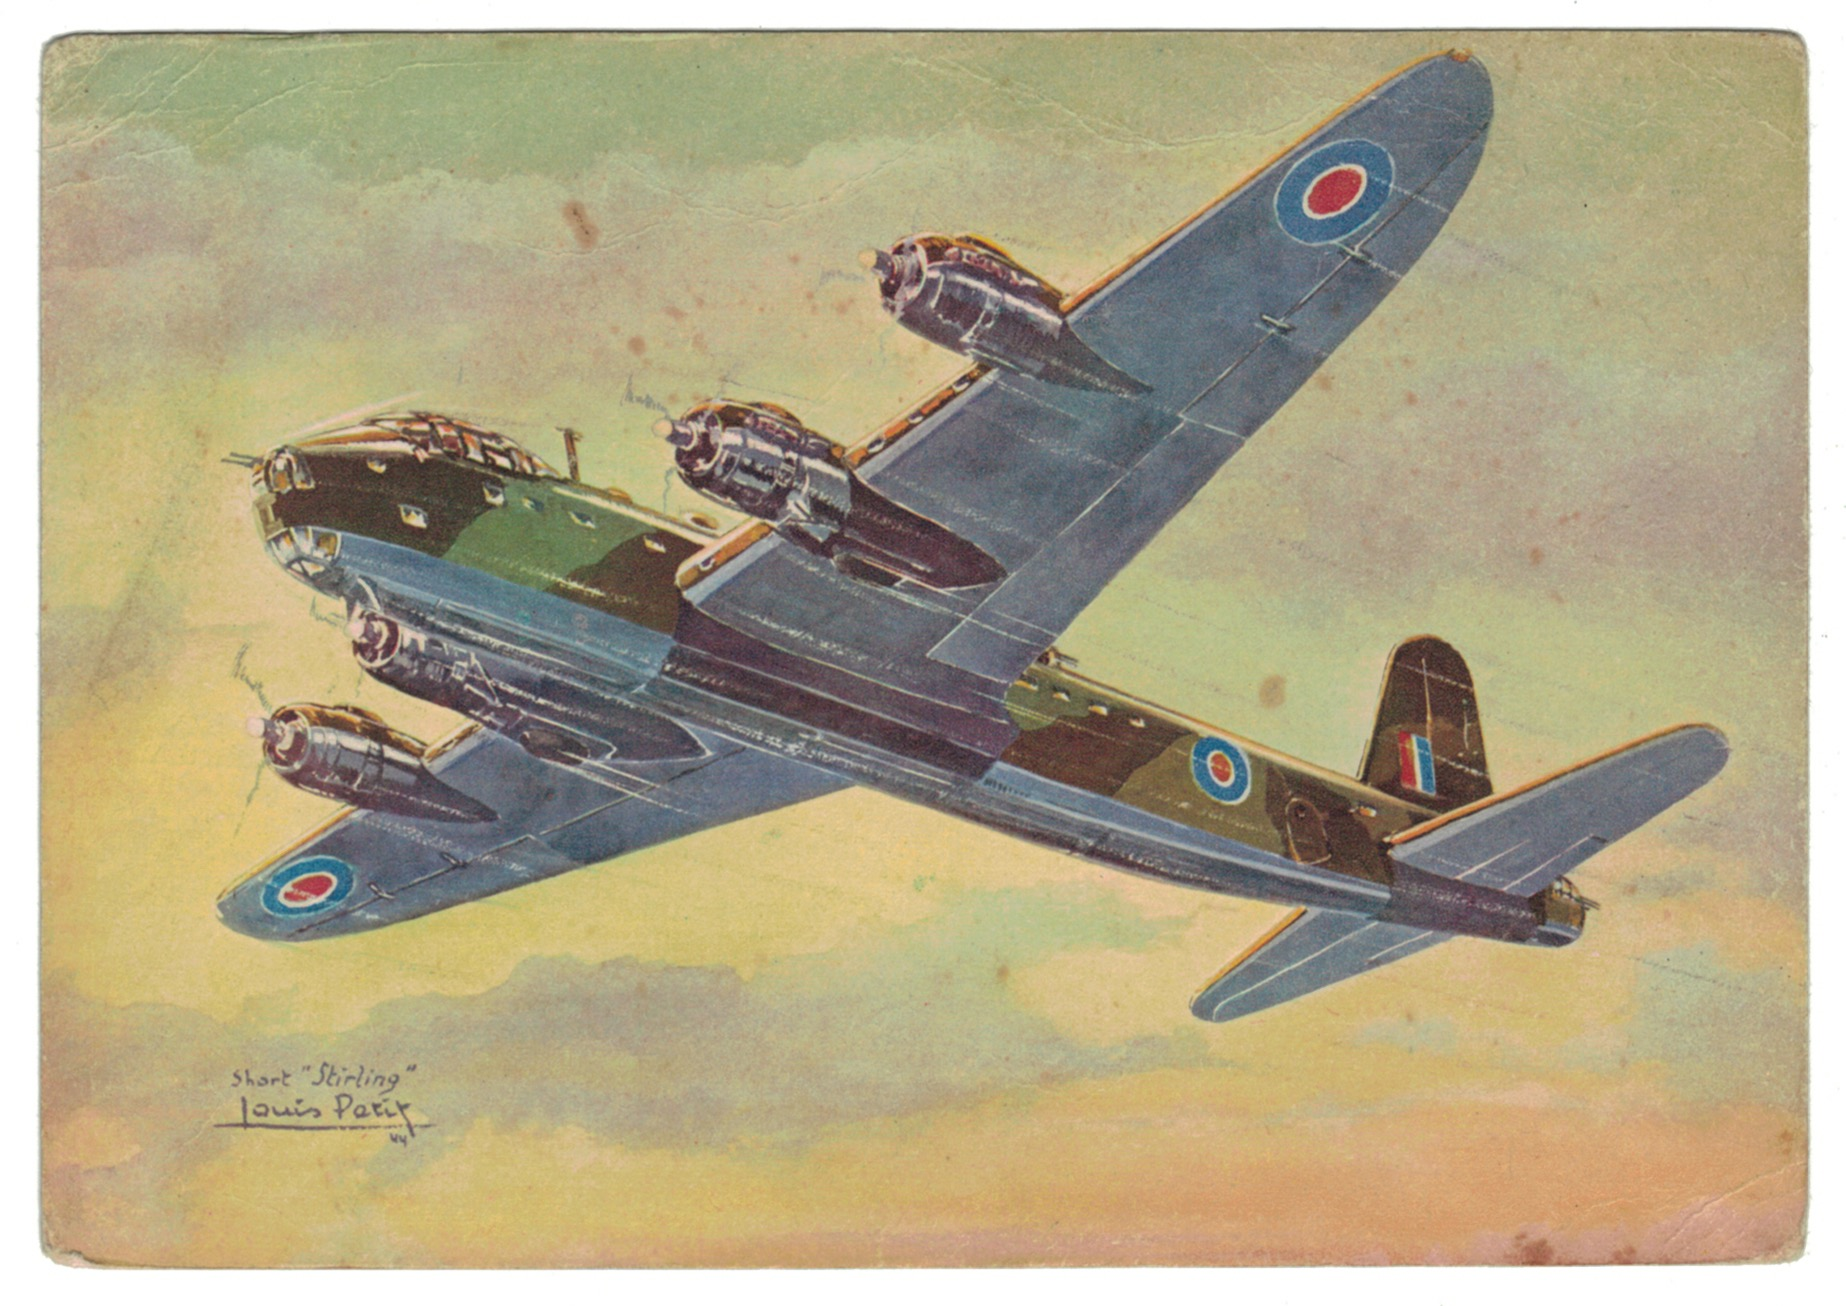 Série 18 Cartes Postale - Aviation - Guerre 39/45 - Illustration Louis Petit - Atelier D'art L.E.P. Paris 9e